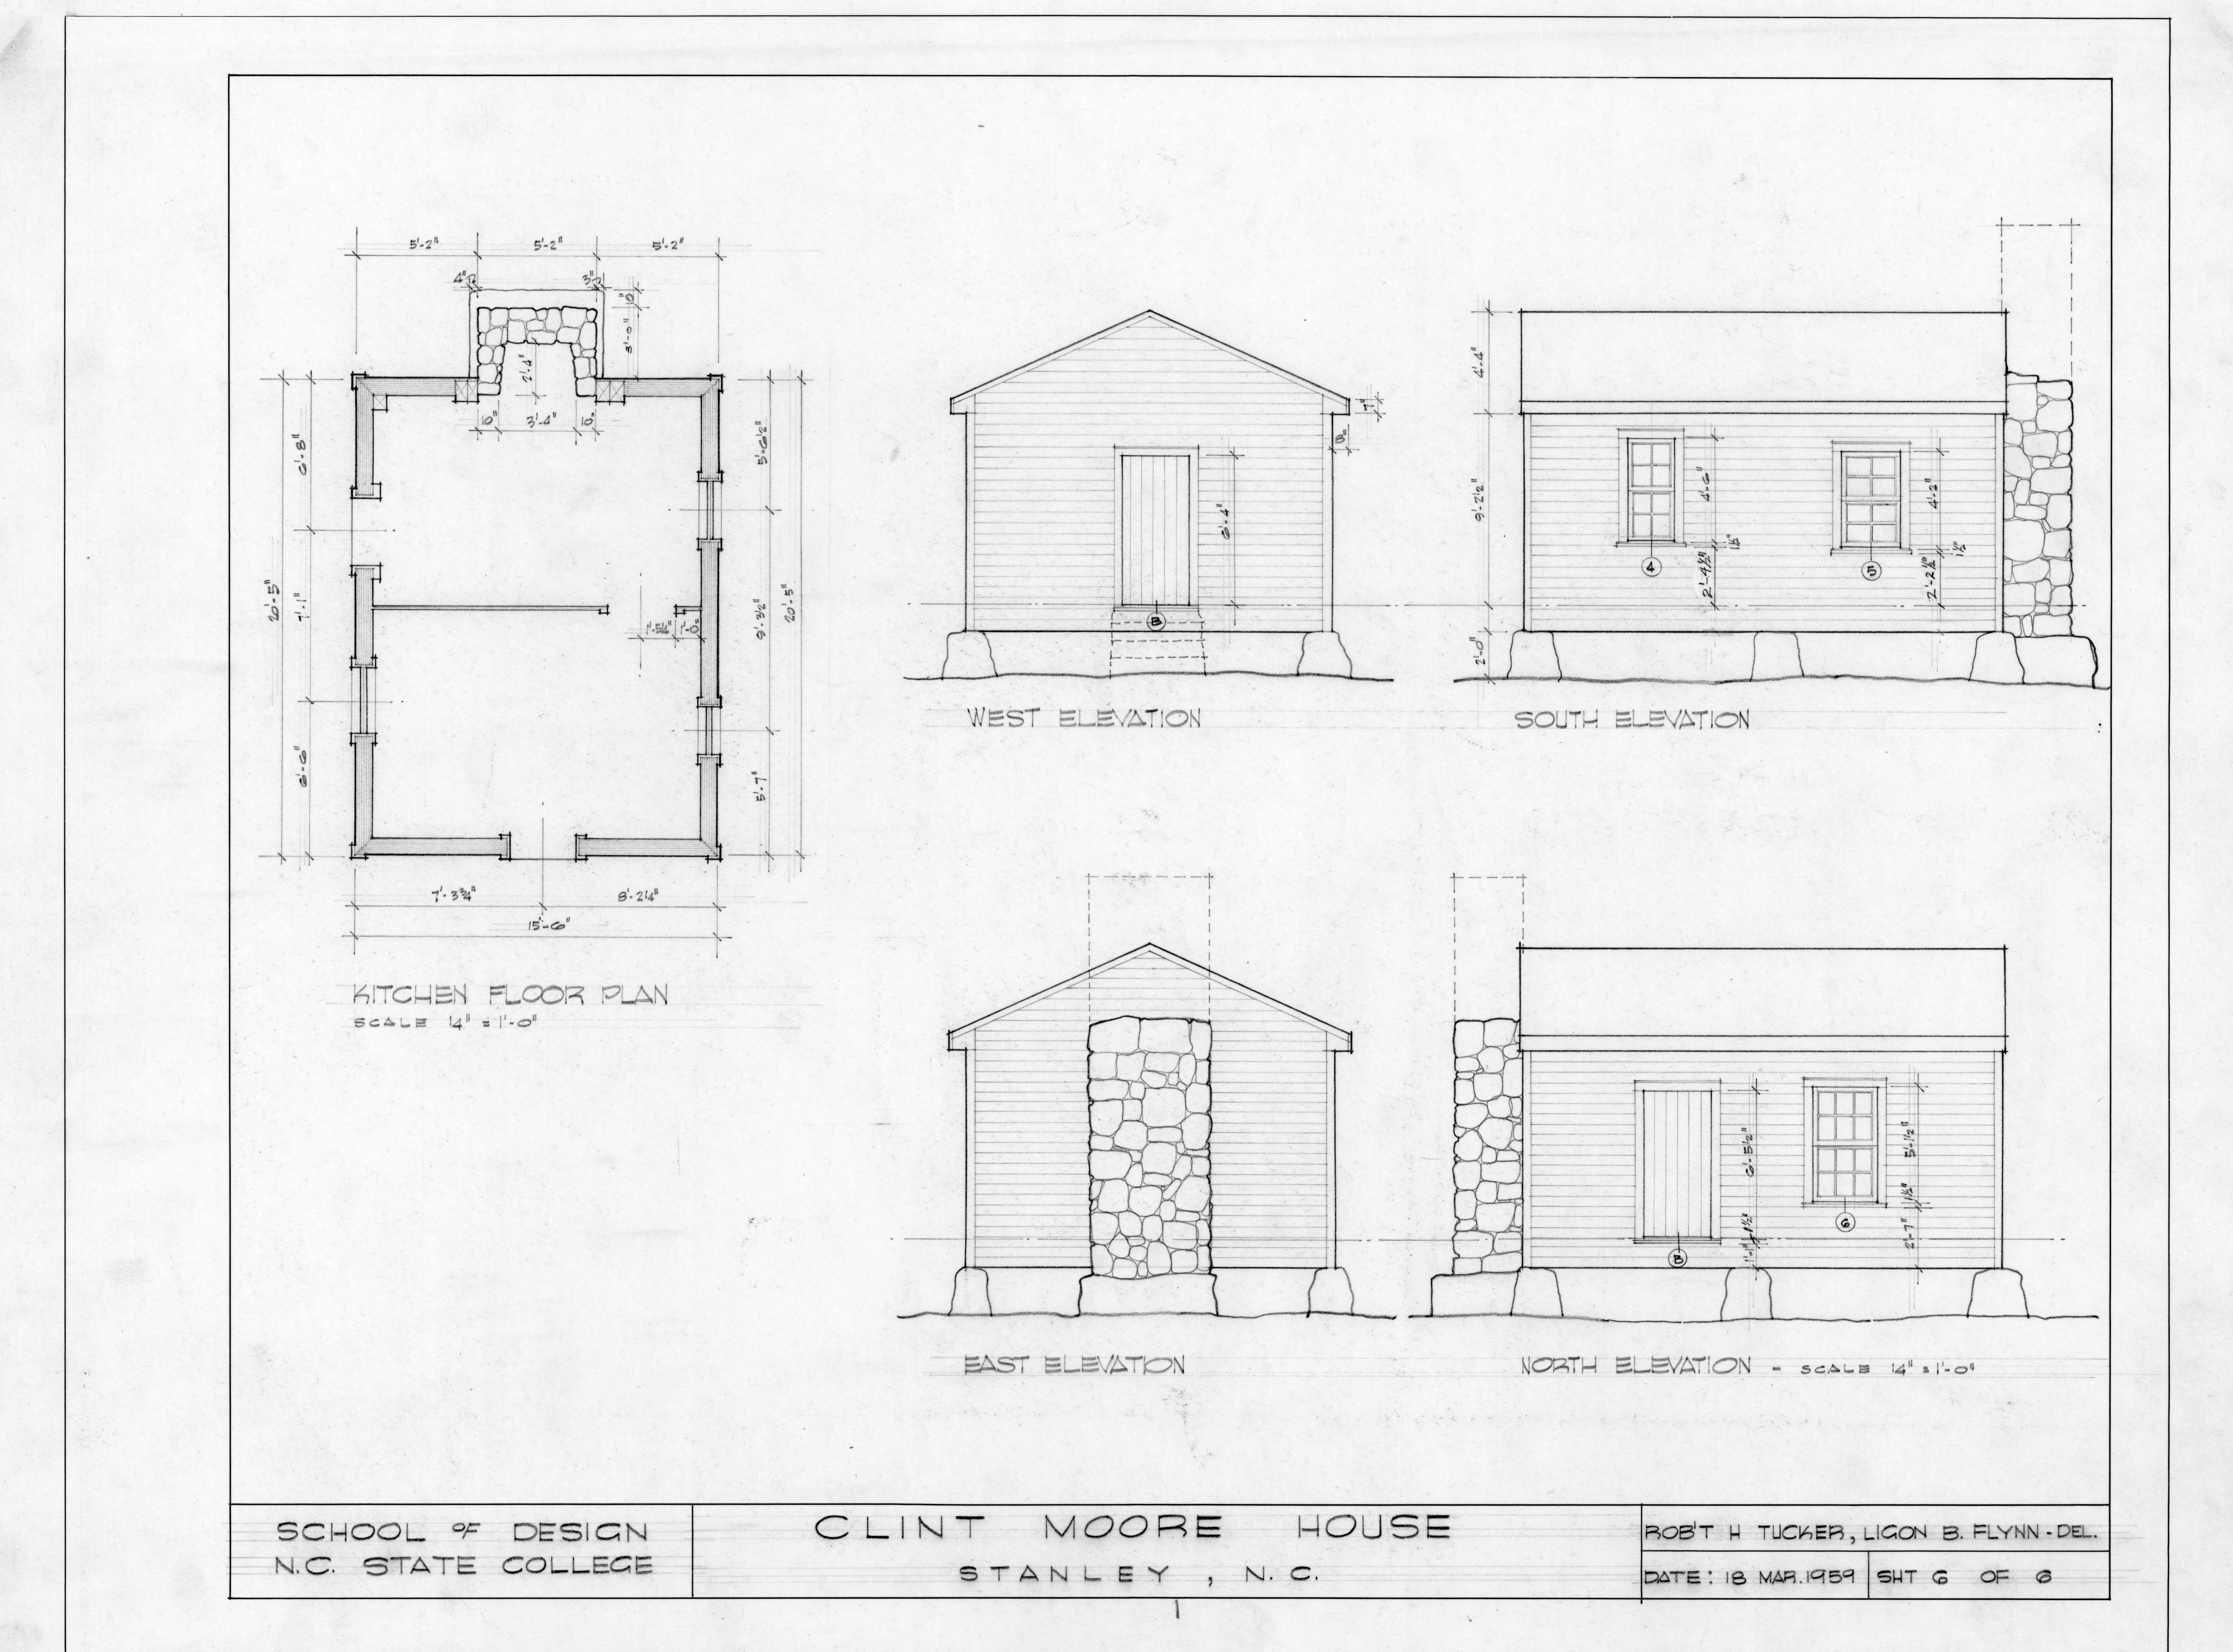 kitchen elevations and floor plan clint moore house kindergarten school section plan and elevations lindley